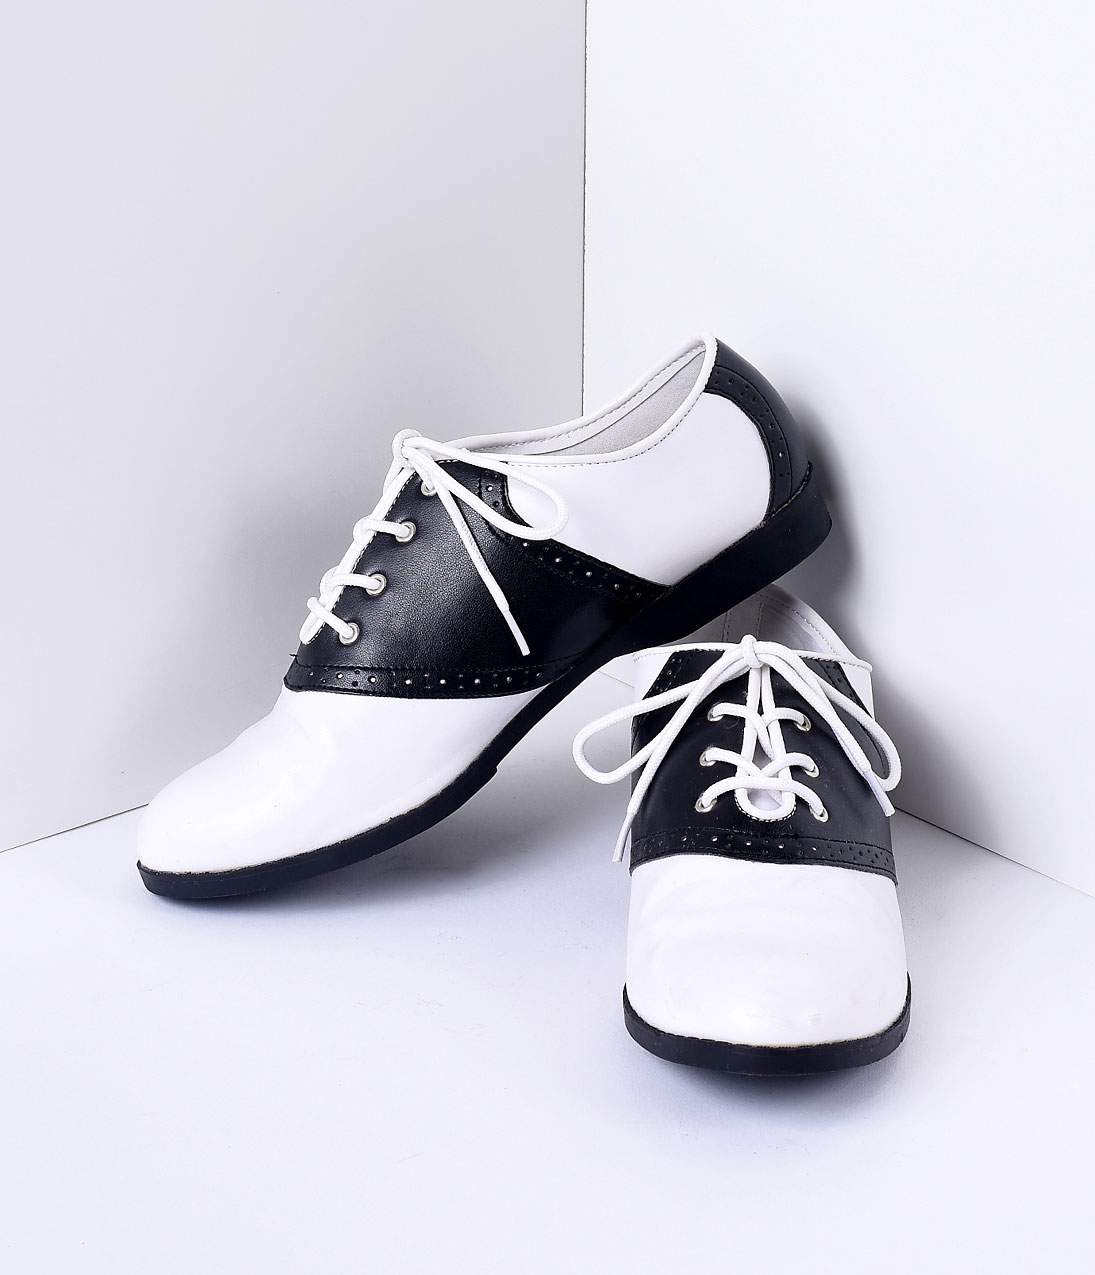 Saddle Shoes History Black  White Classic Lace Up Saddle Shoes $48.00 AT vintagedancer.com